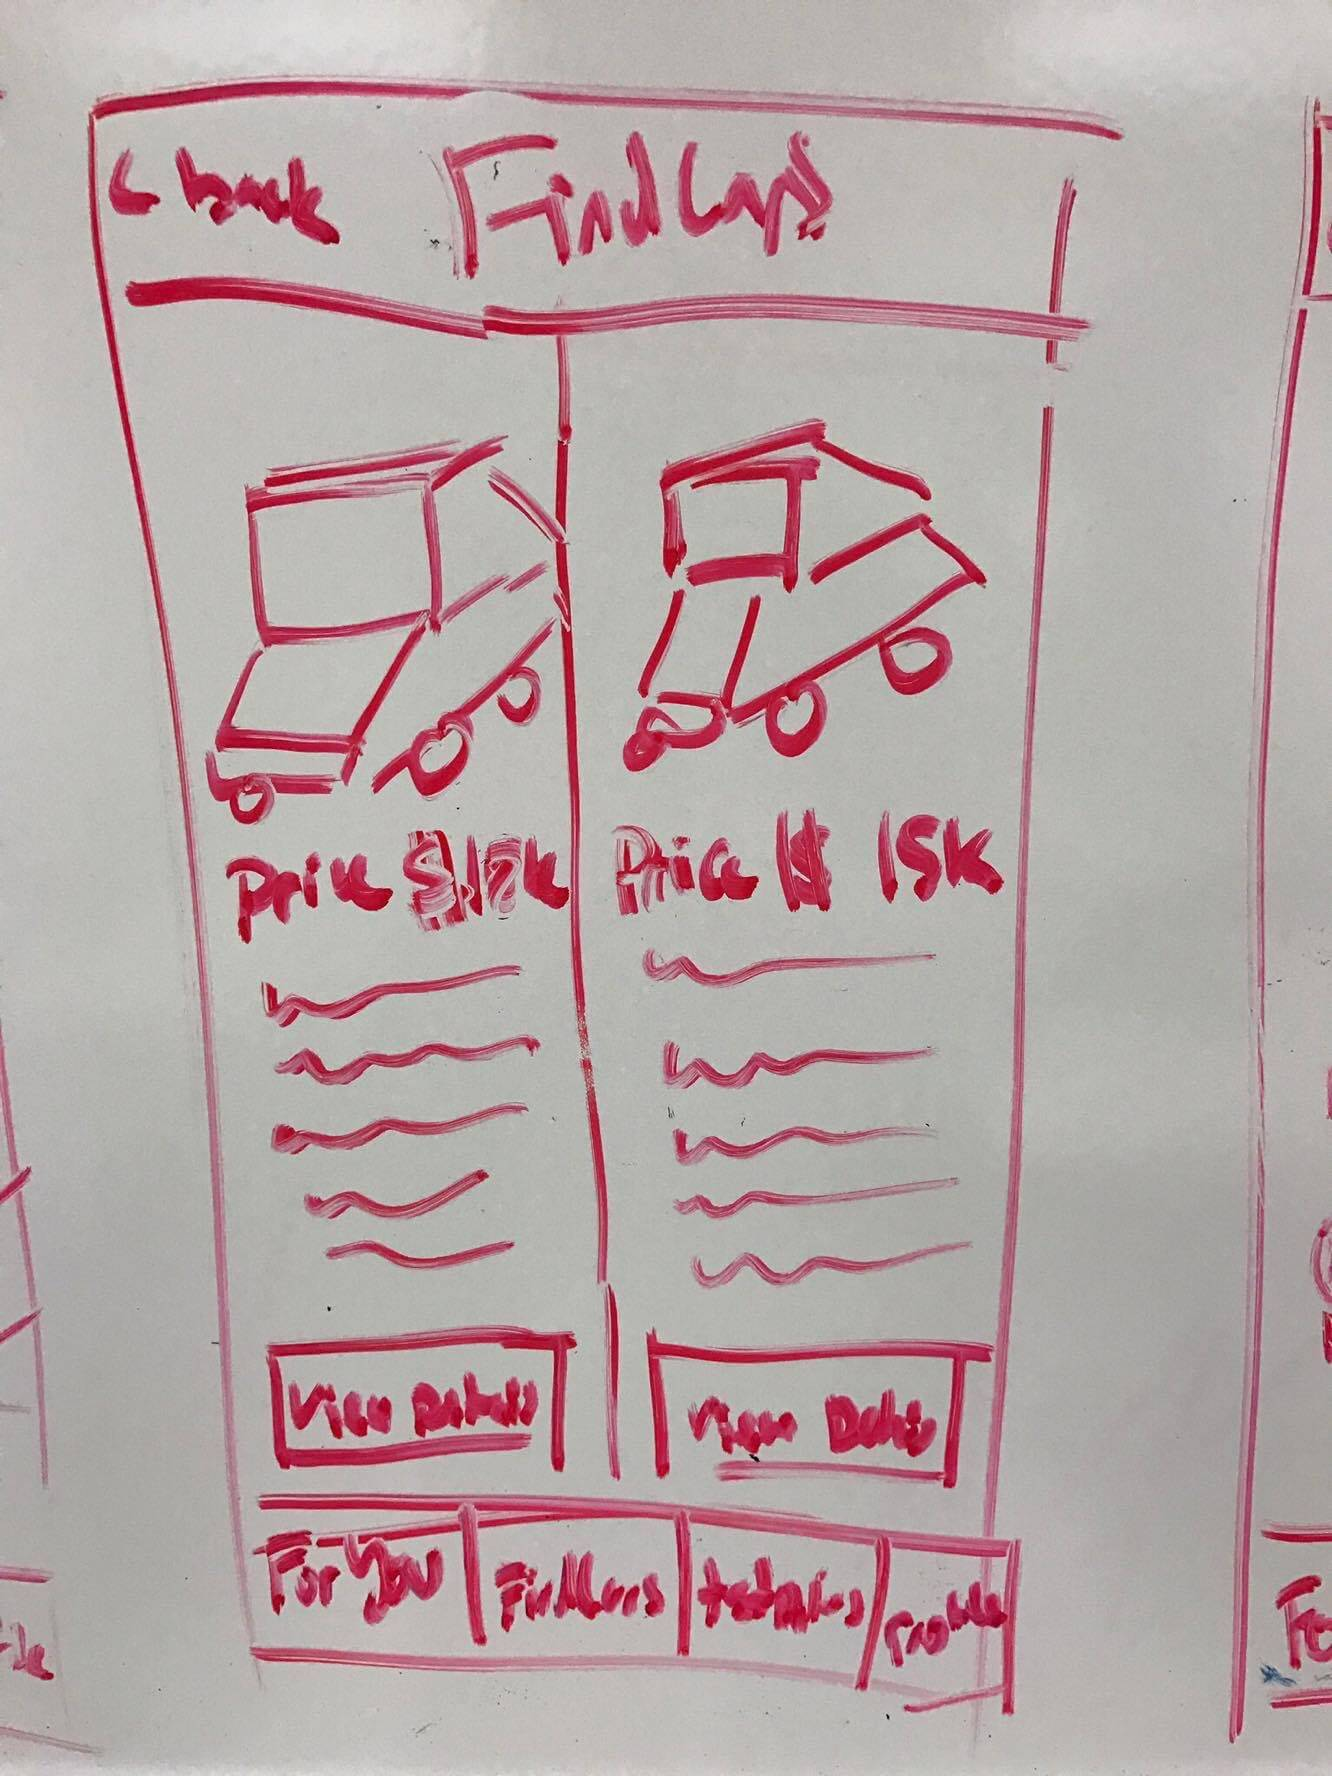 A whiteboard drawing showing cars being compared to each other